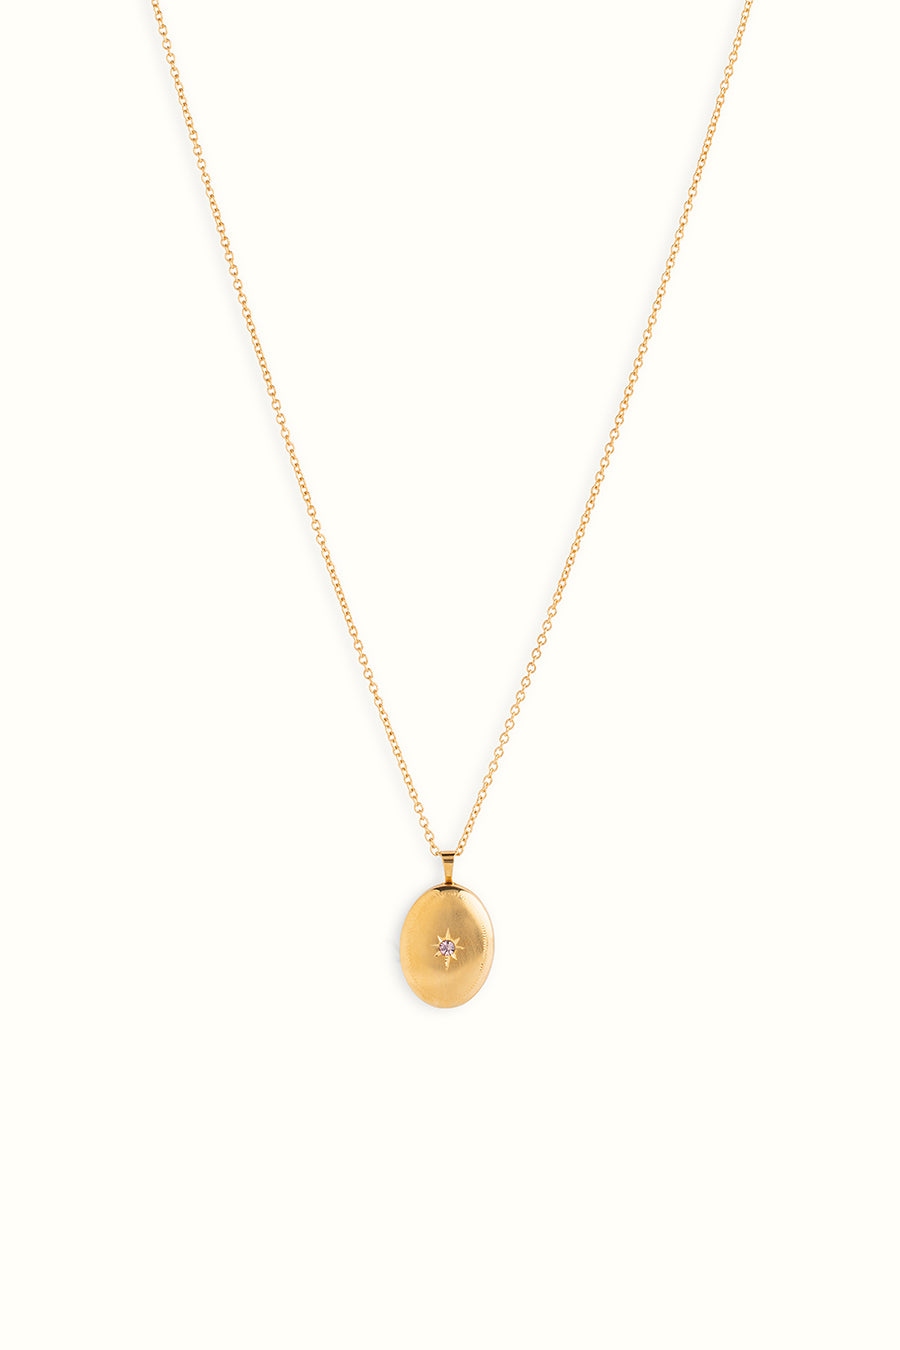 a gold filled necklace with a zirconia set stone locket on a white background